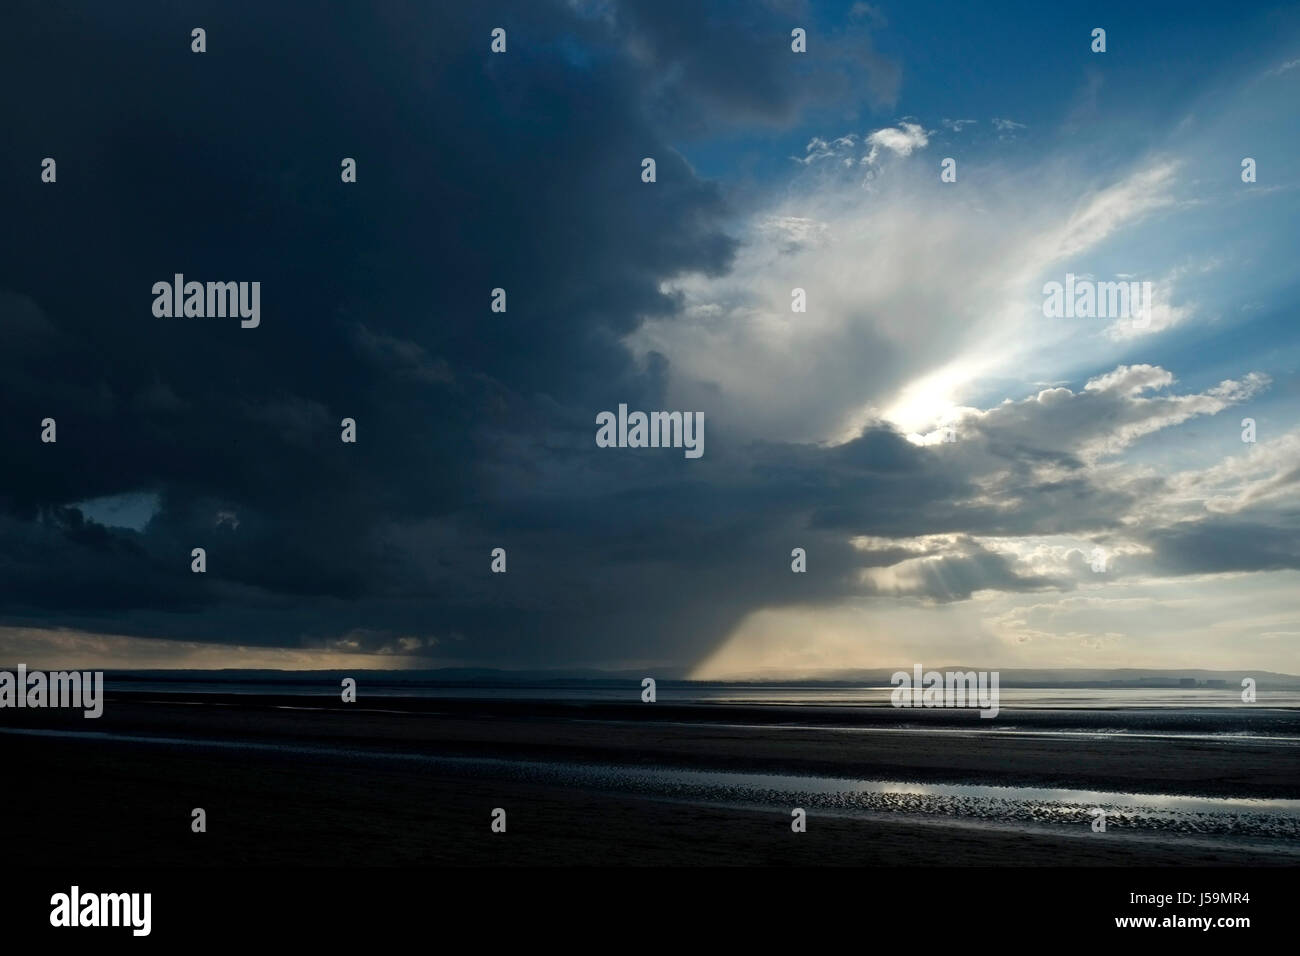 A storm over Hinkley  Point  nuclear power station in the Severn Estuary, approaching Burnham-on-Sea, Somerset, - Stock Image